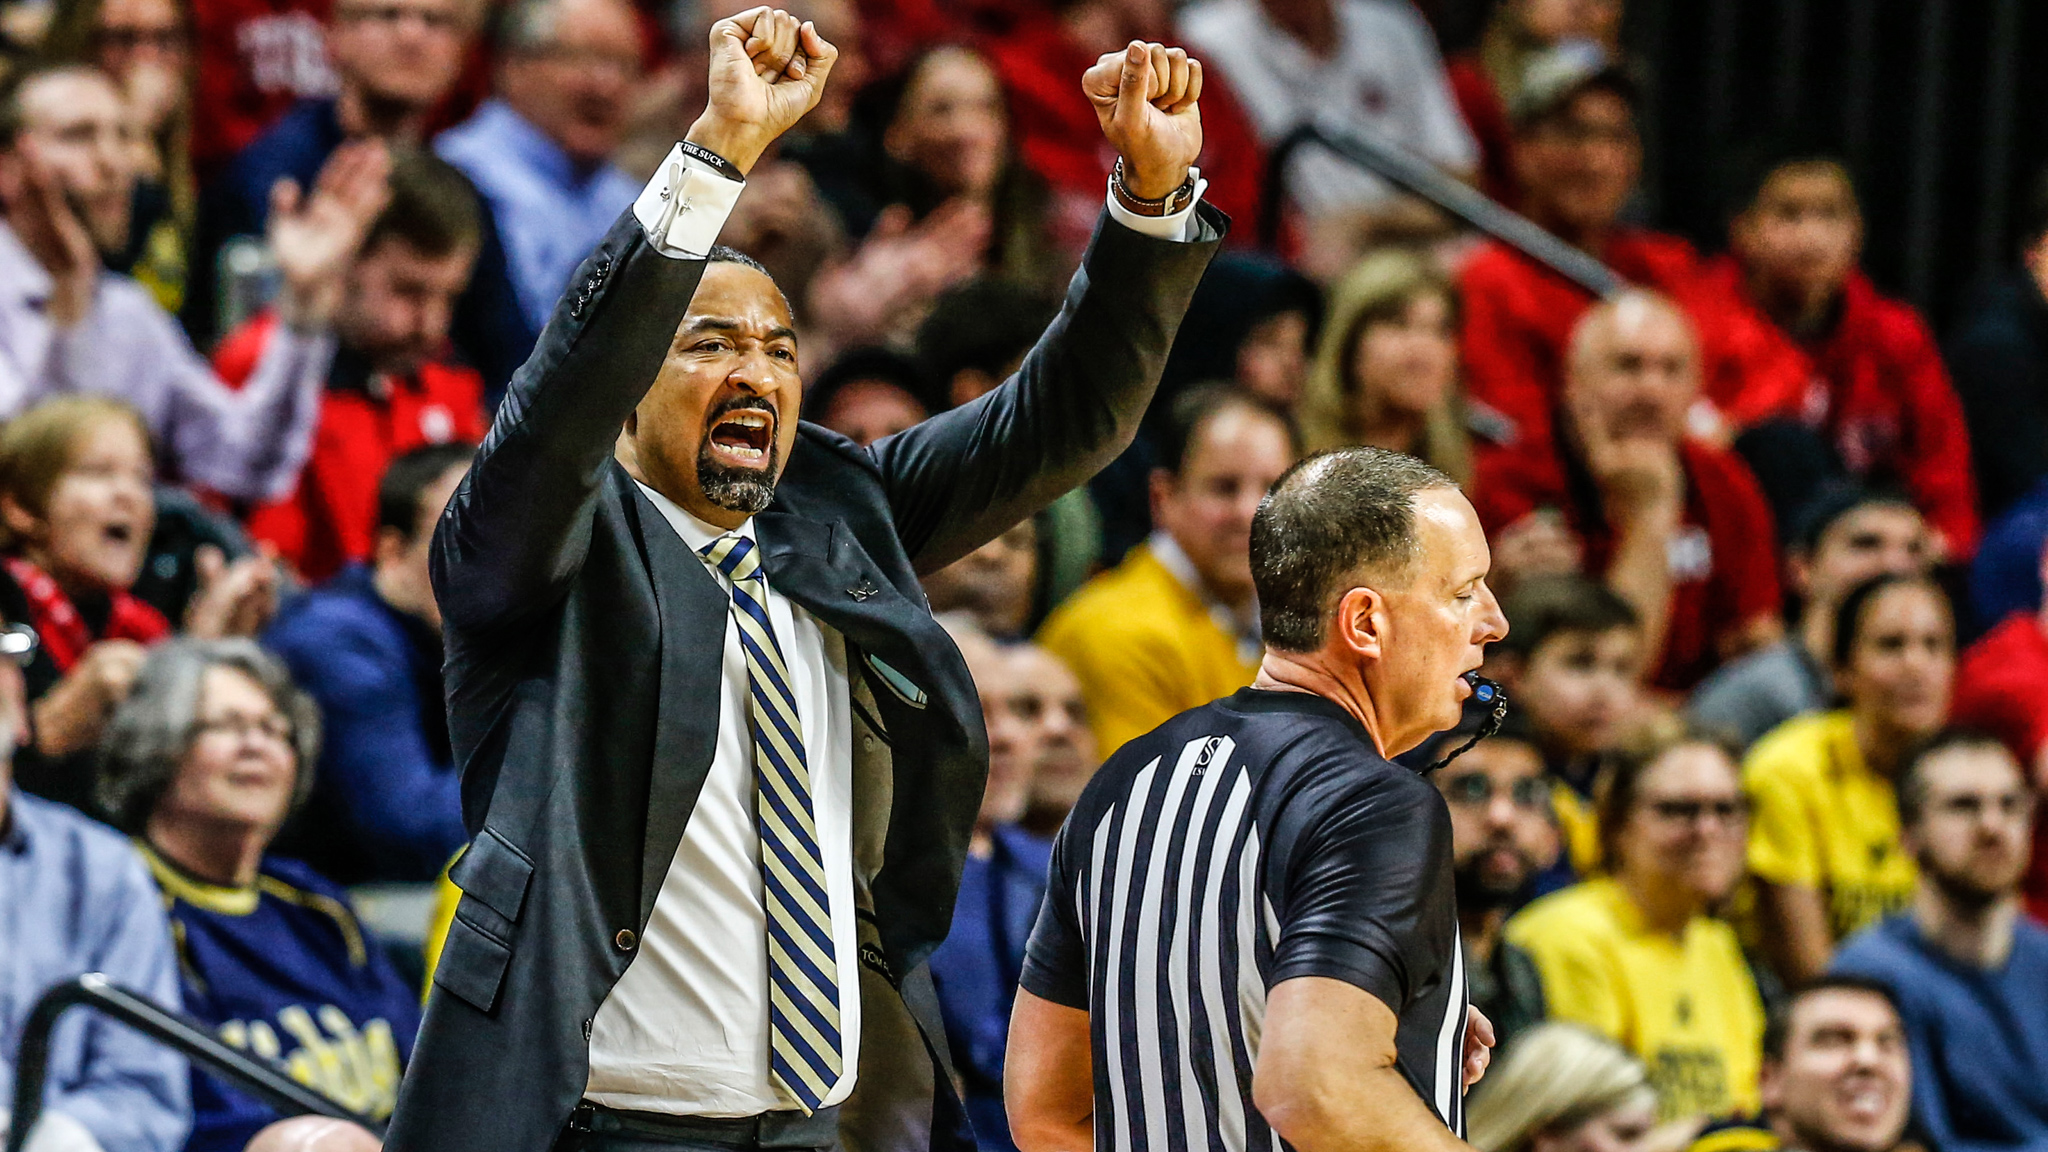 Michigan Basketball Earns Victory At Rutgers With Defense And Grit